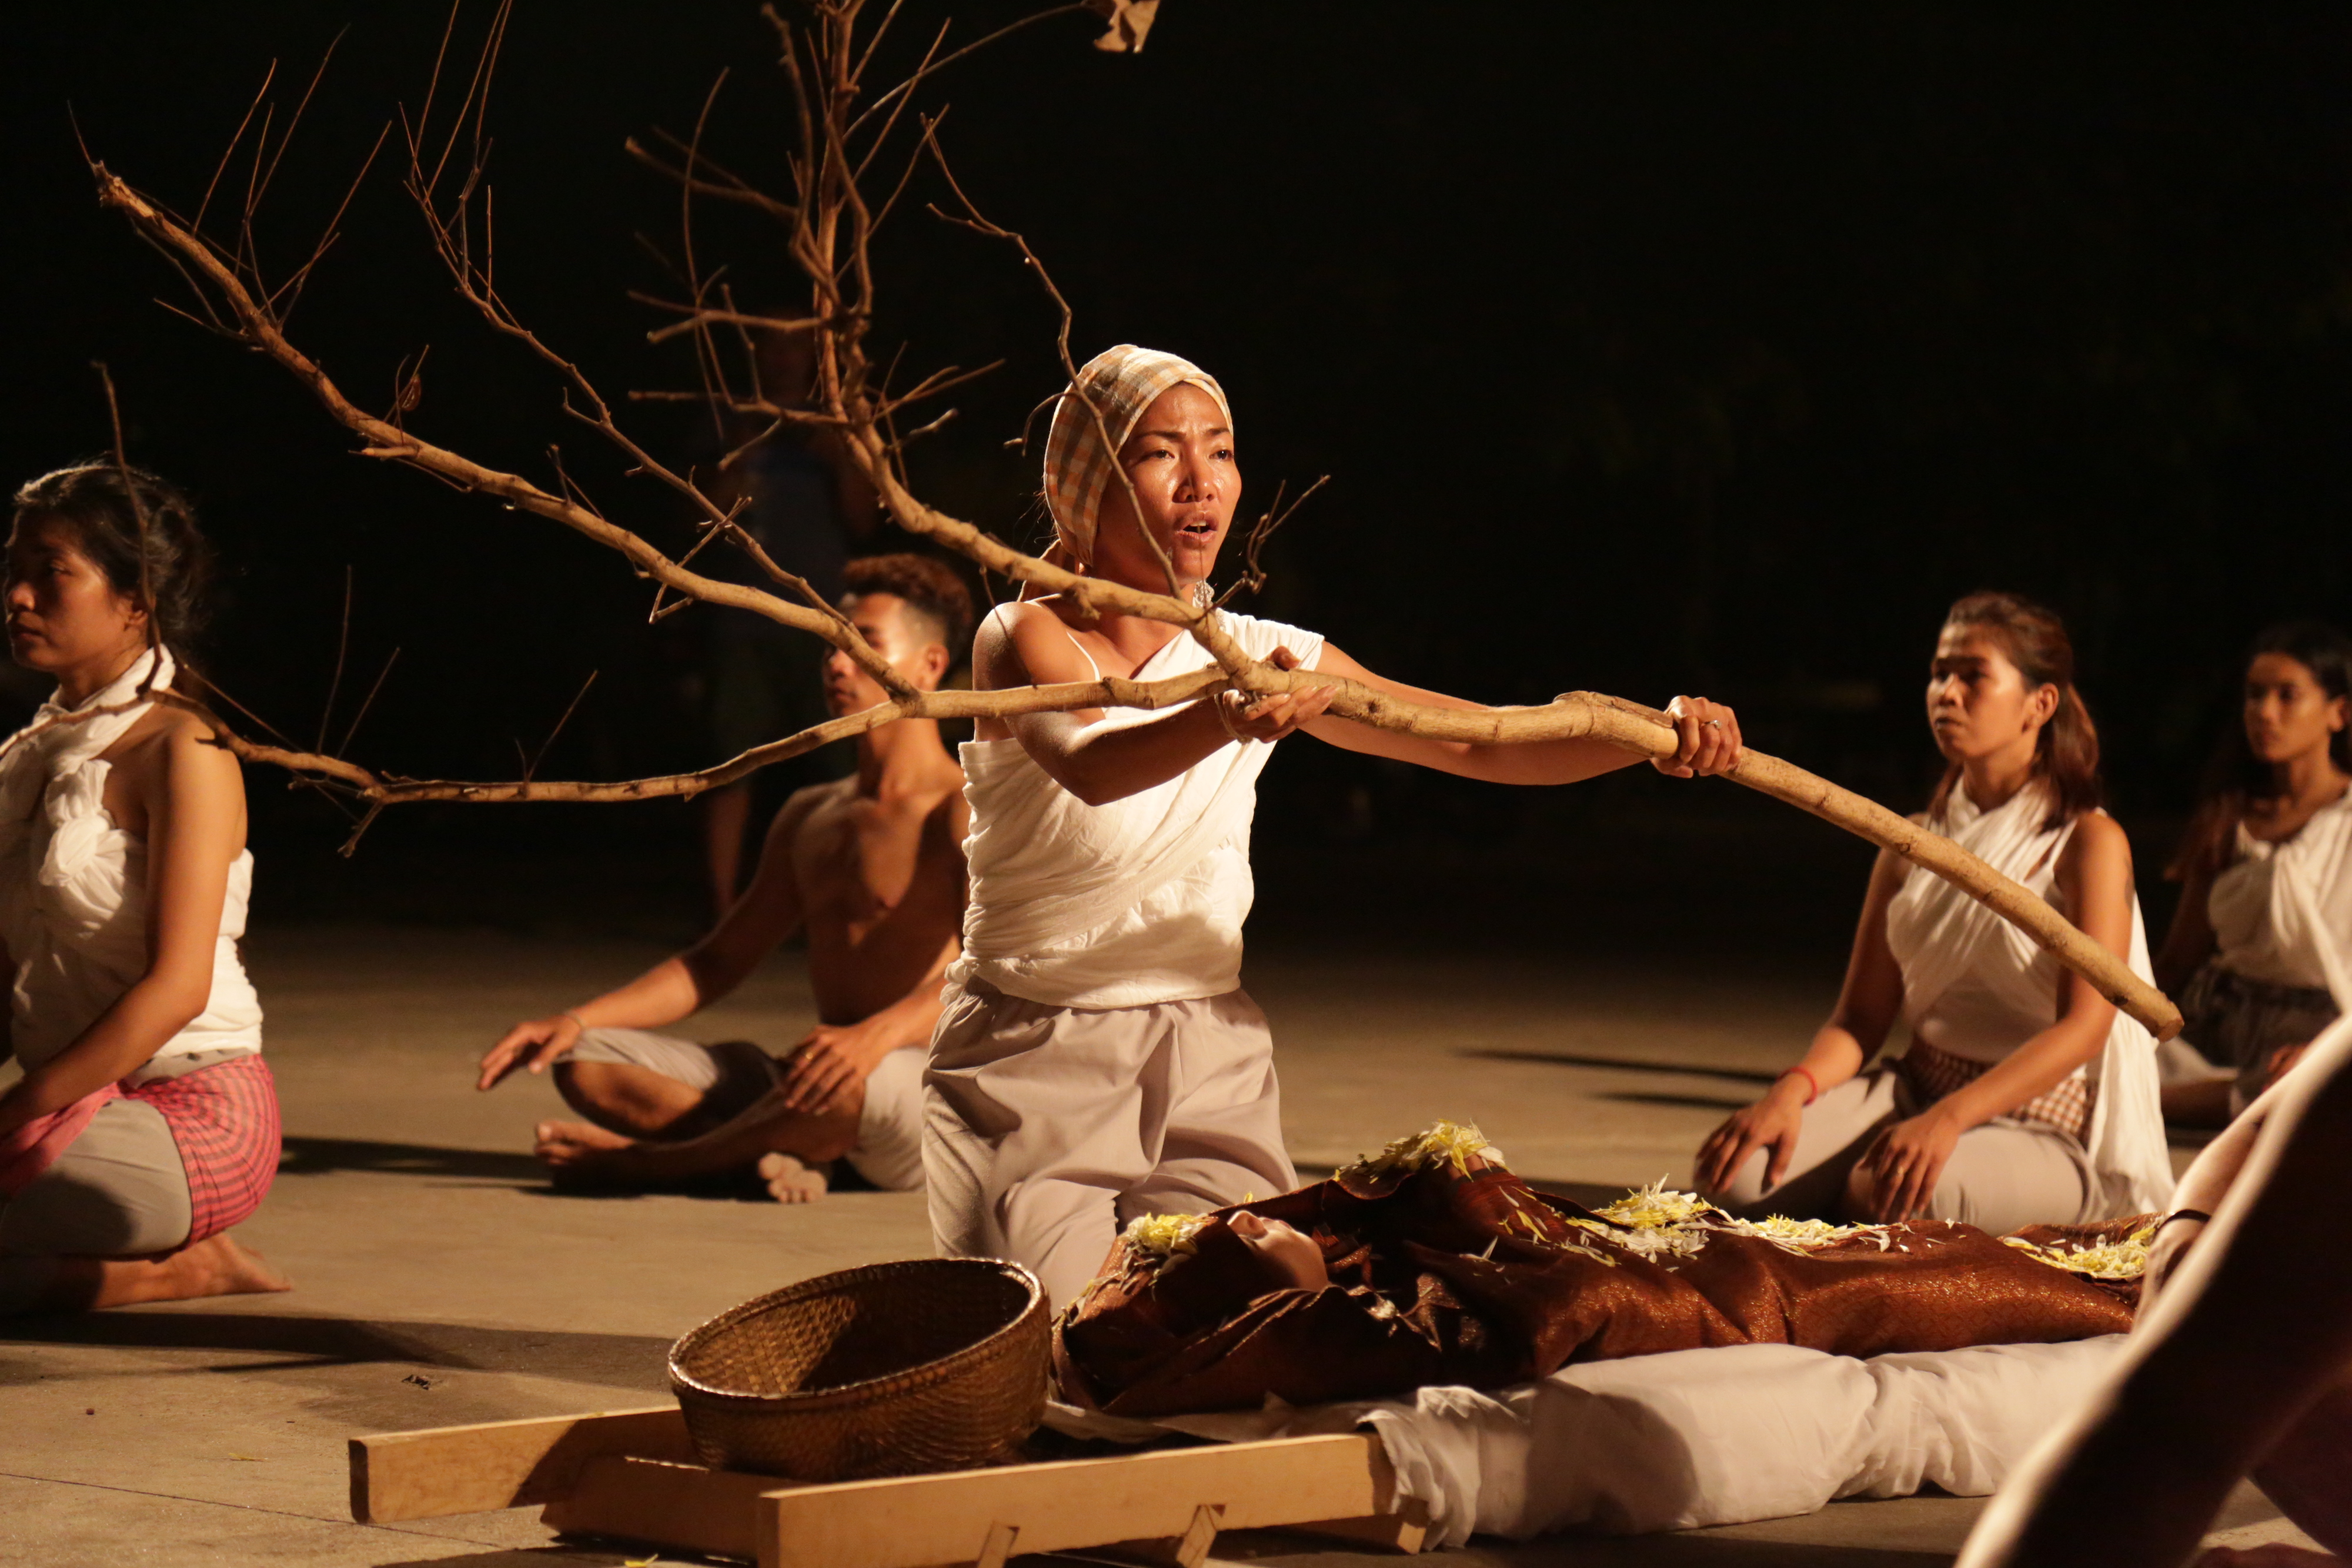 a performer wearing white holding a large tree branch